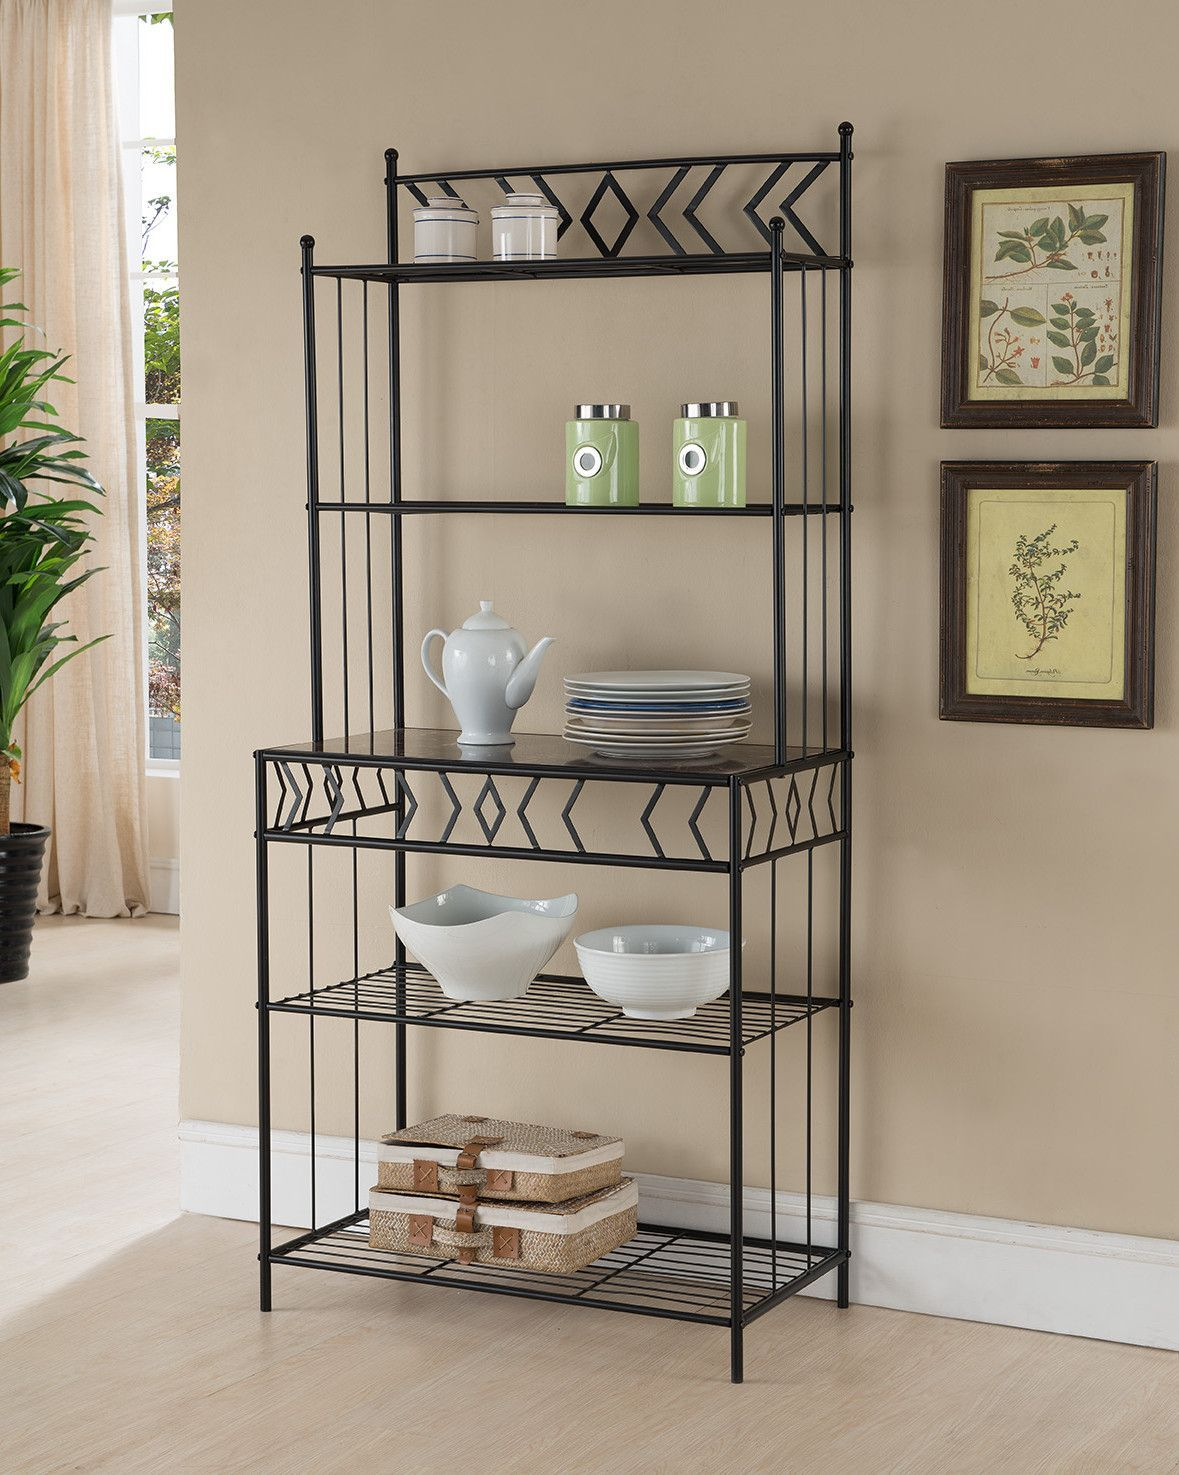 stand tier metal bakers with pin shelves contemporary black storage kitchen rack